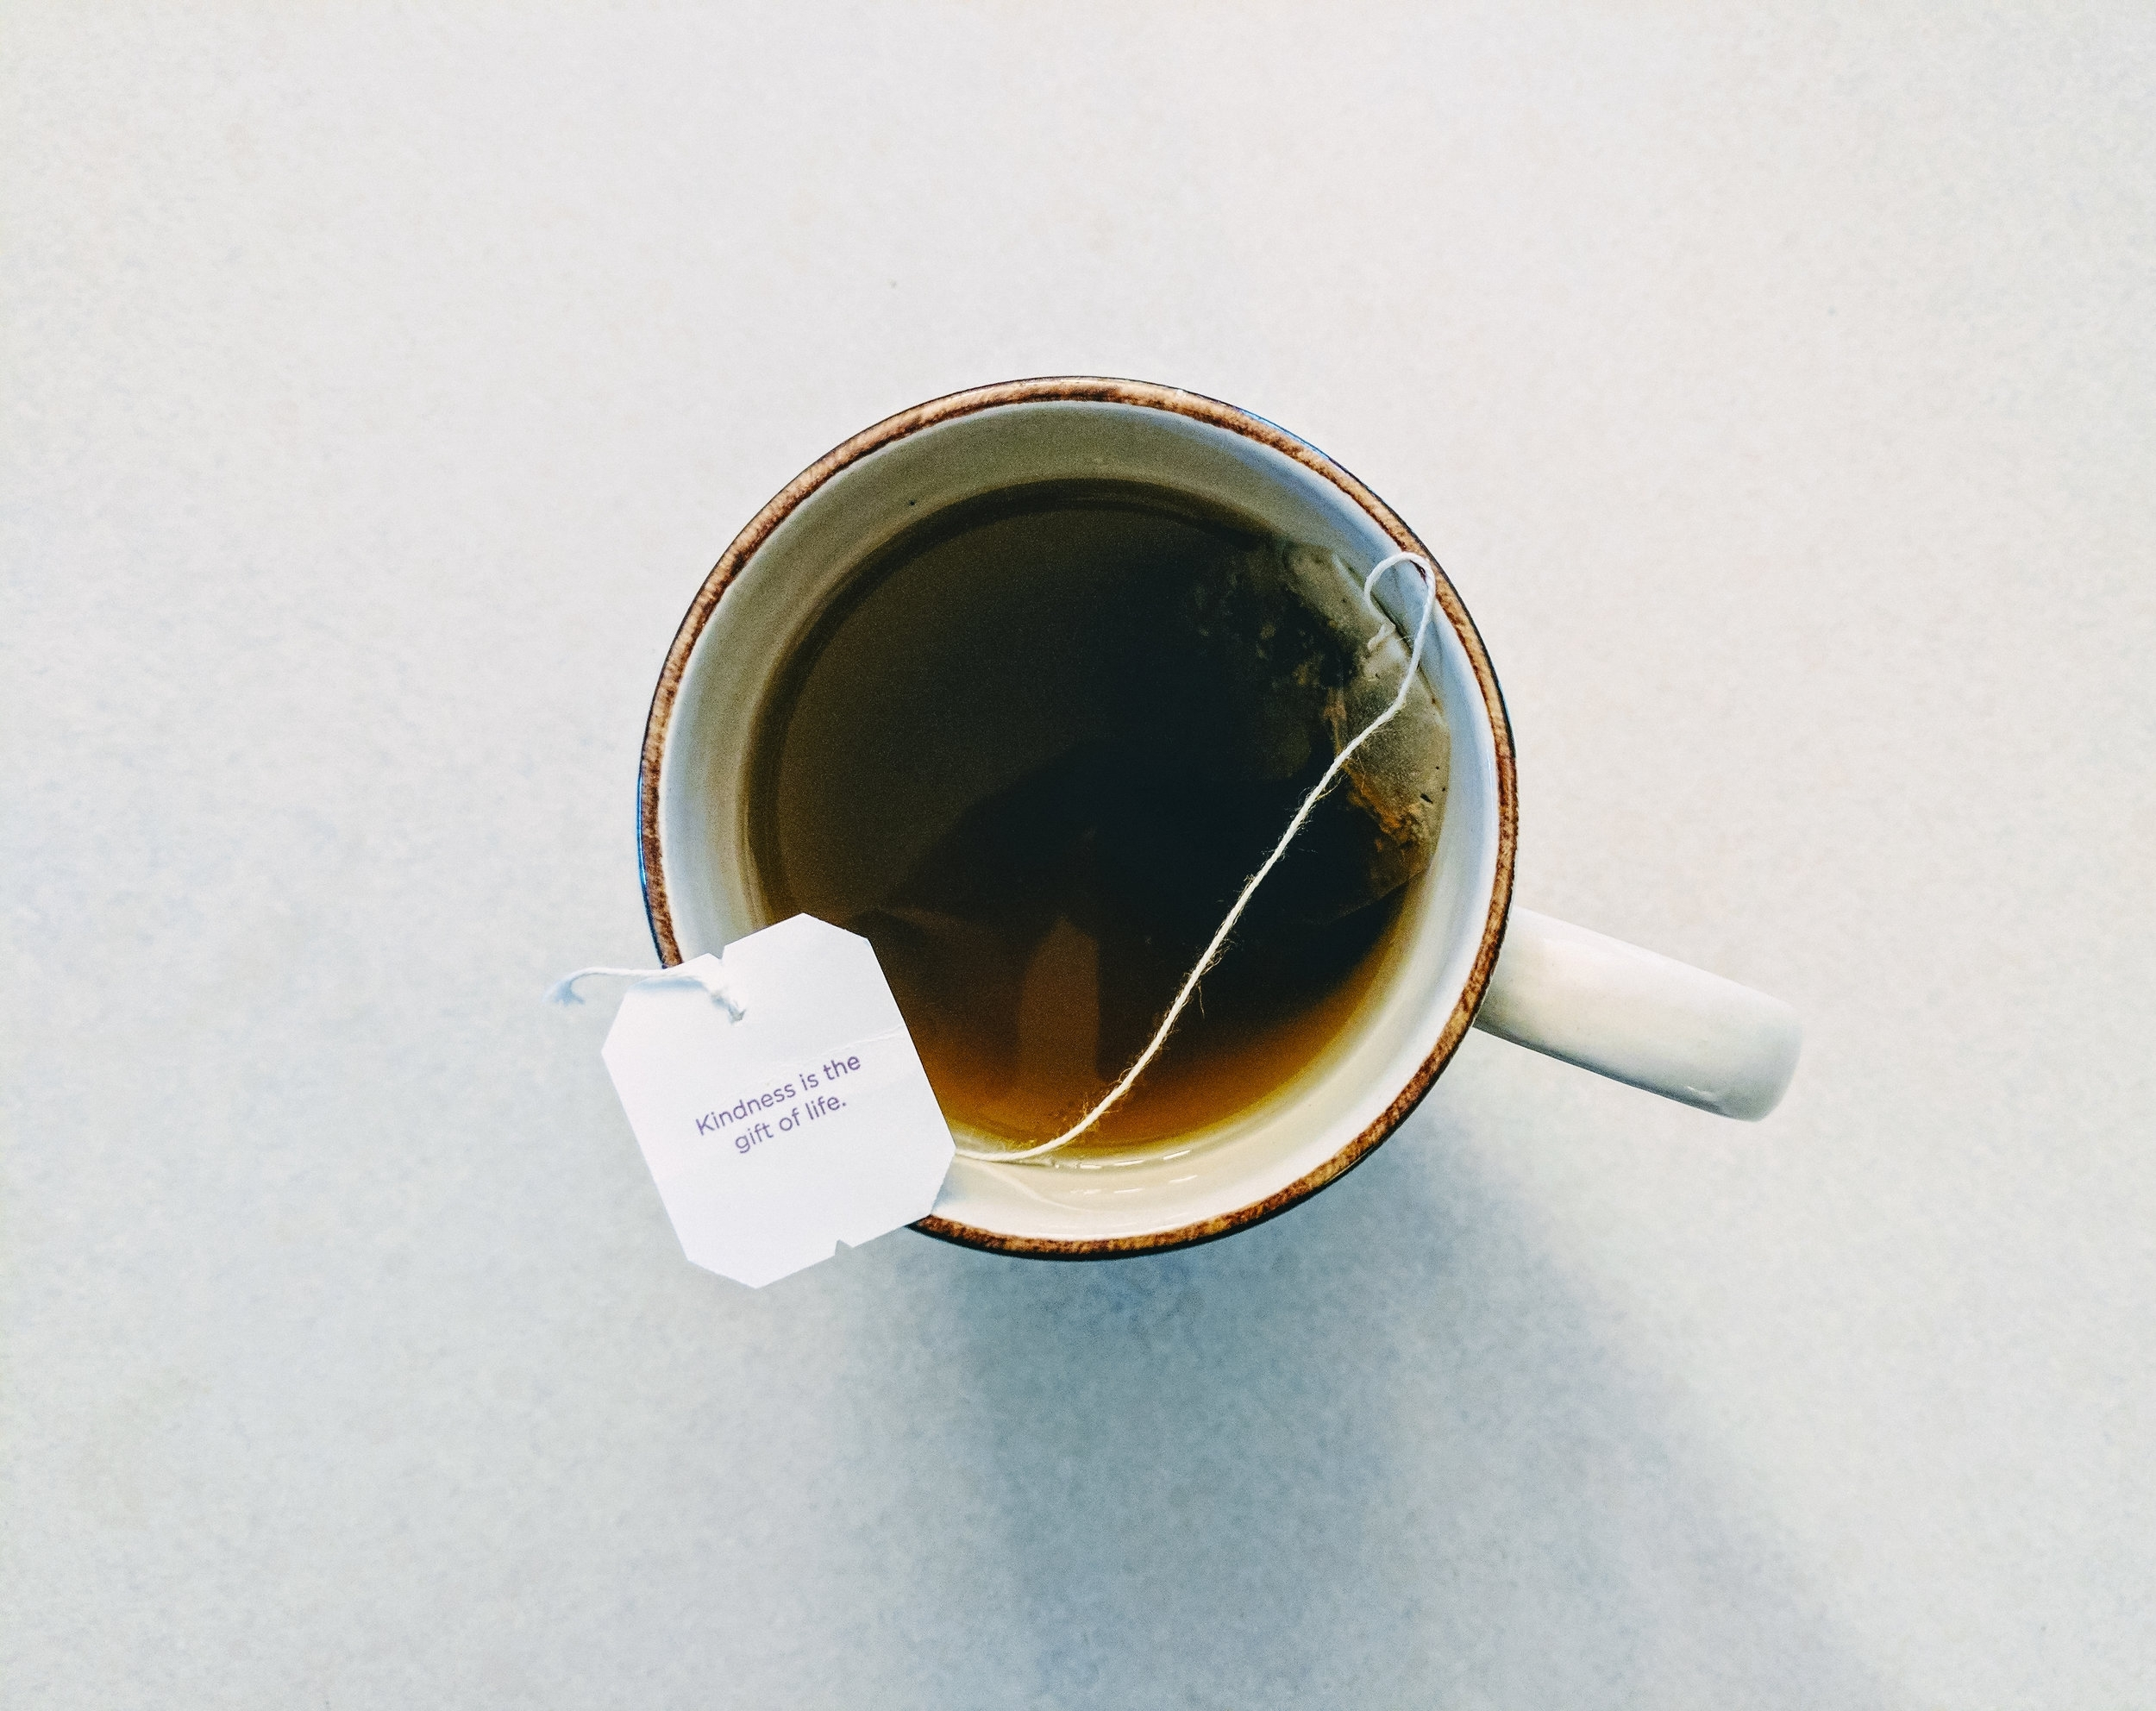 Let's chat! - and meet over a cup of tea